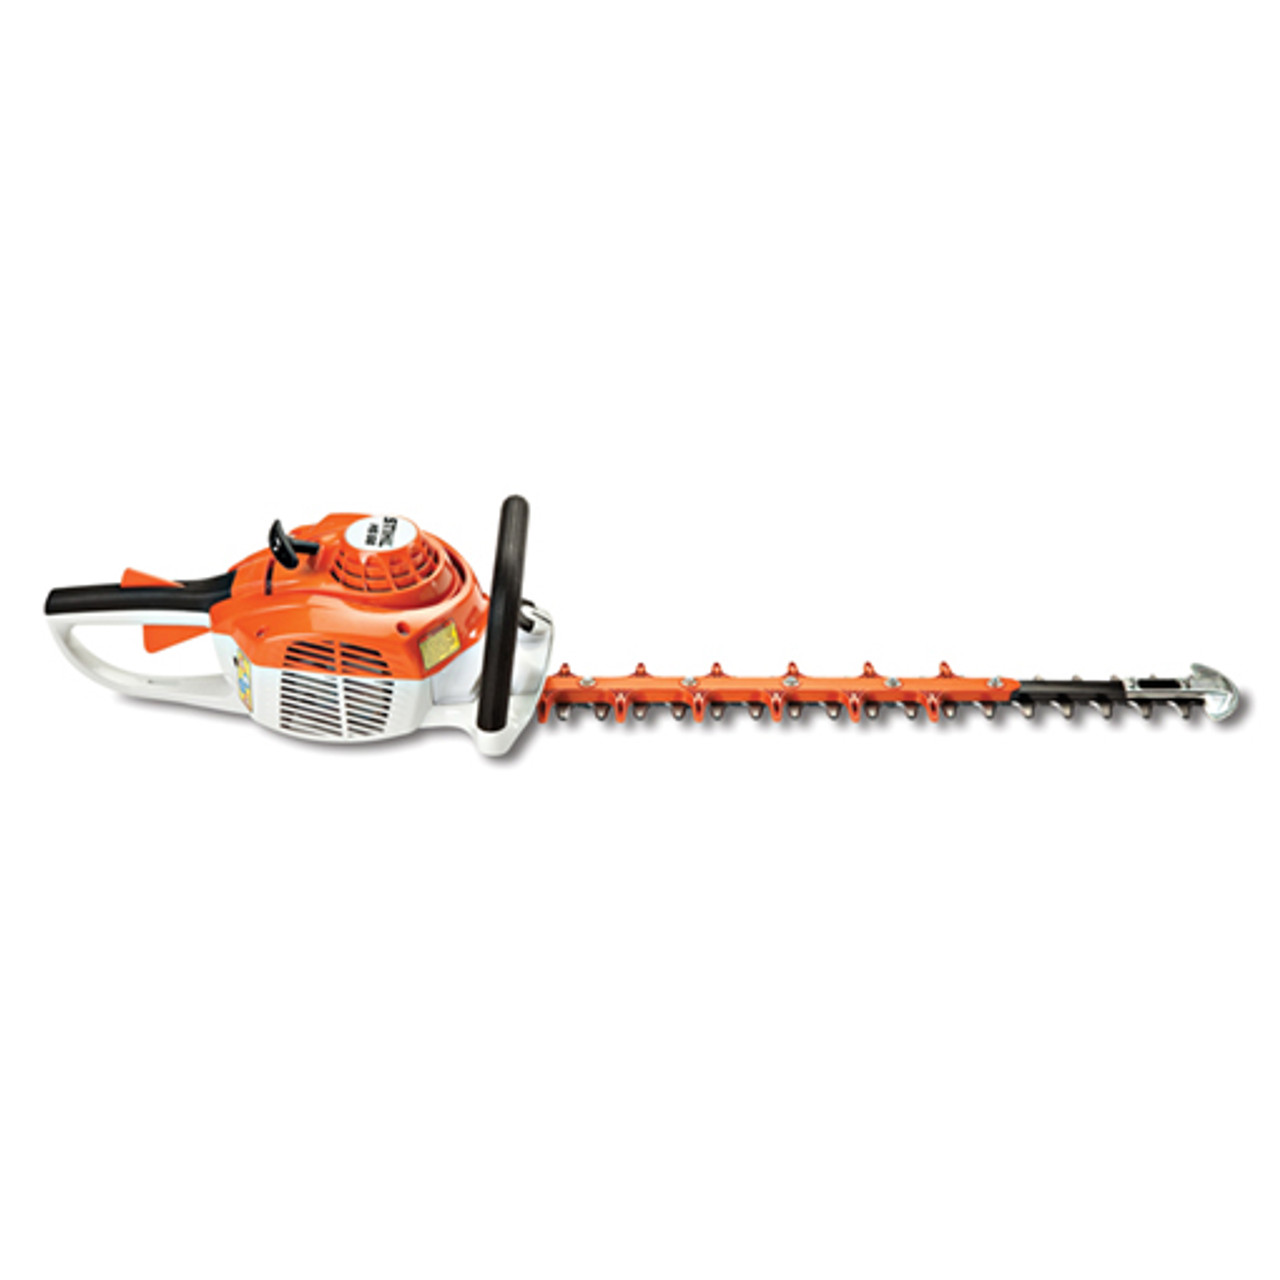 """STIHL HS 56 24 21.4cc Hedge Trimmer w/ 24"""" Double-Sided Blades Image"""